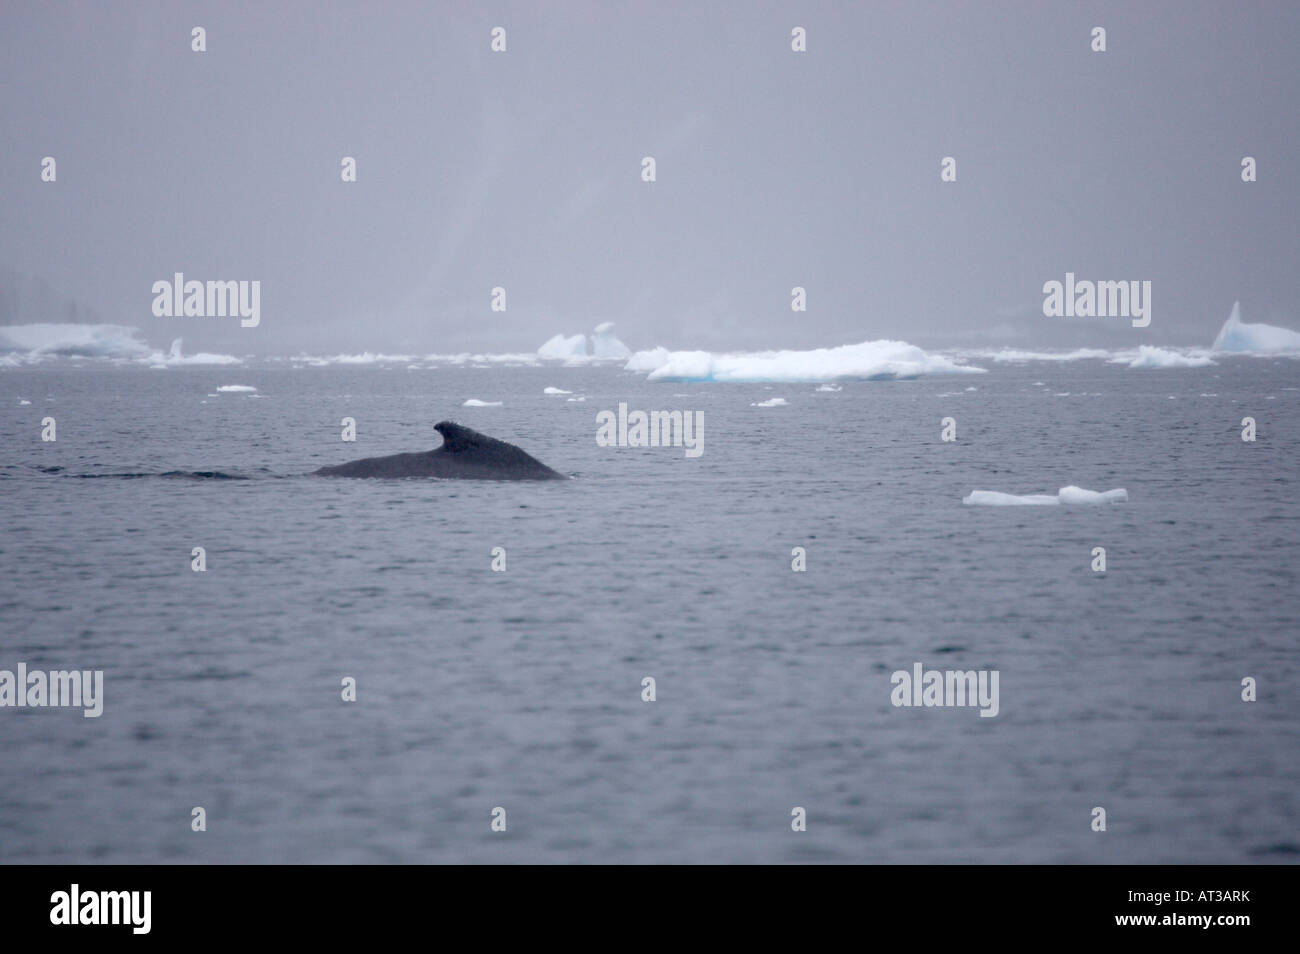 Humpbacked Whale in Antarctica - Stock Image